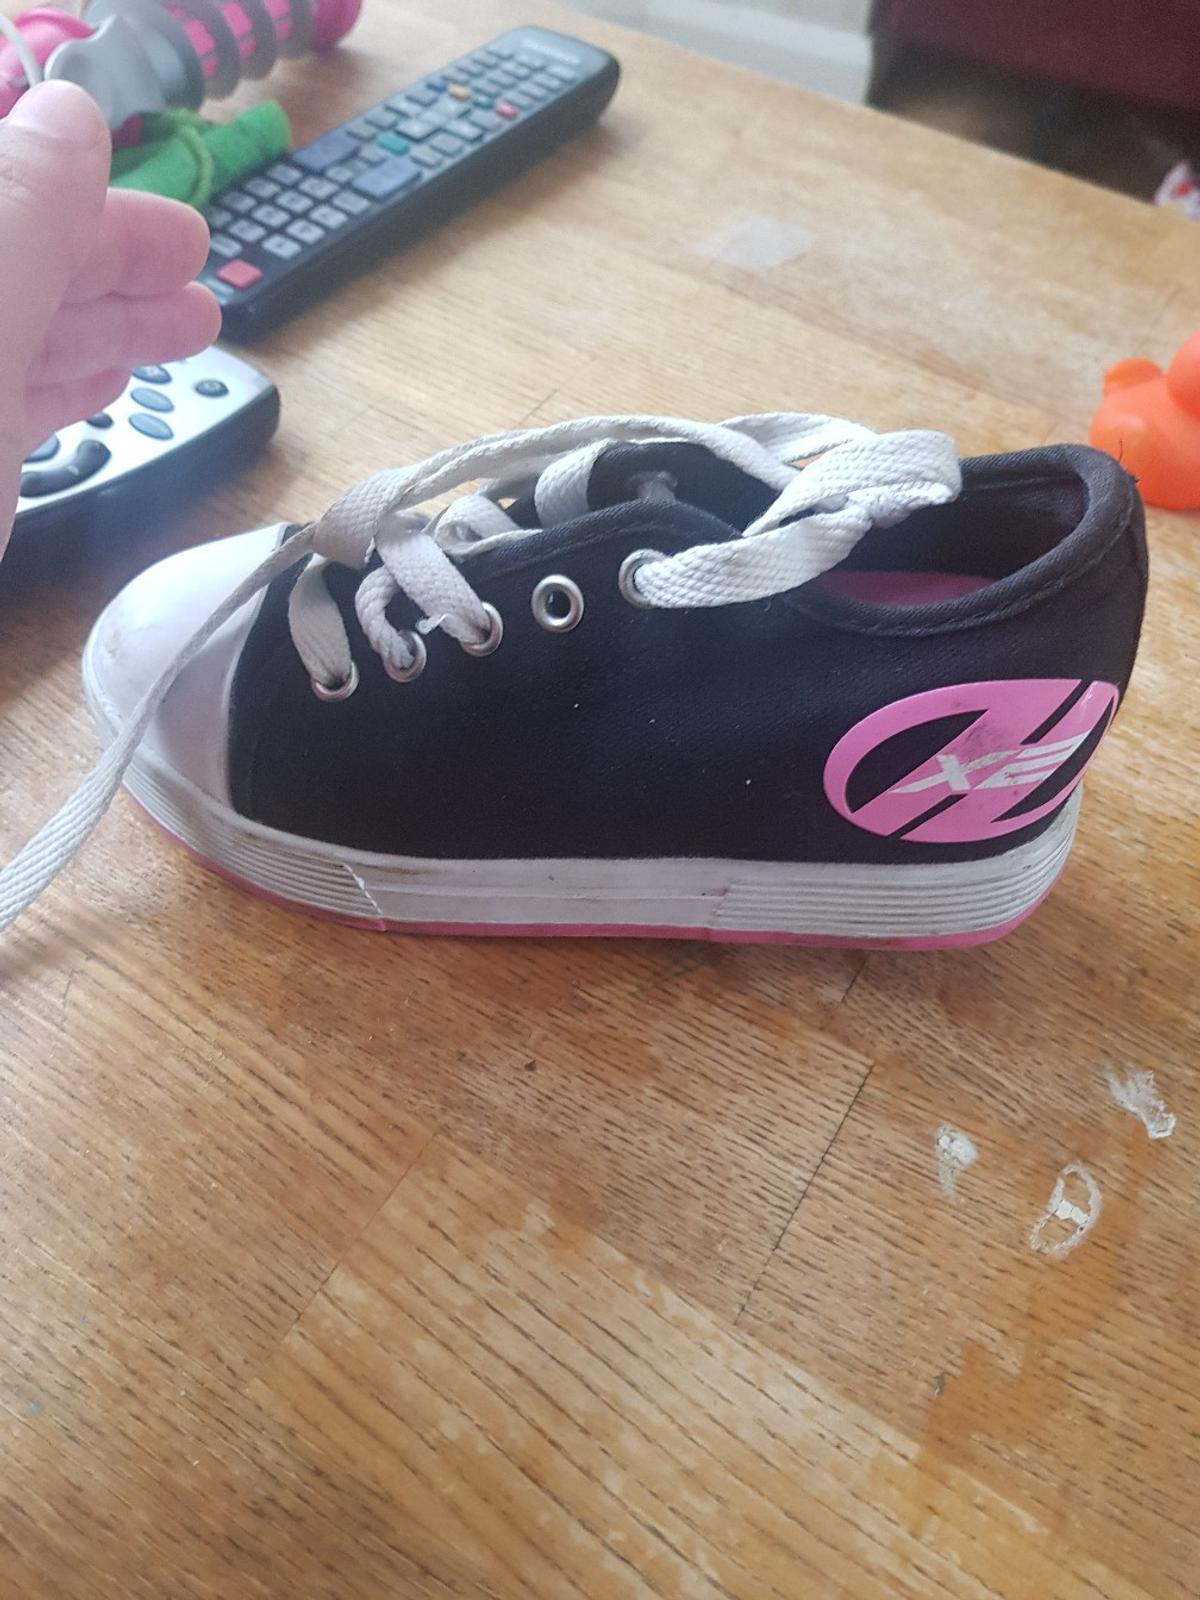 size 12 girls excellent condition. heelys shoes with wheels. originally for £50. kids love them will never take them off lol